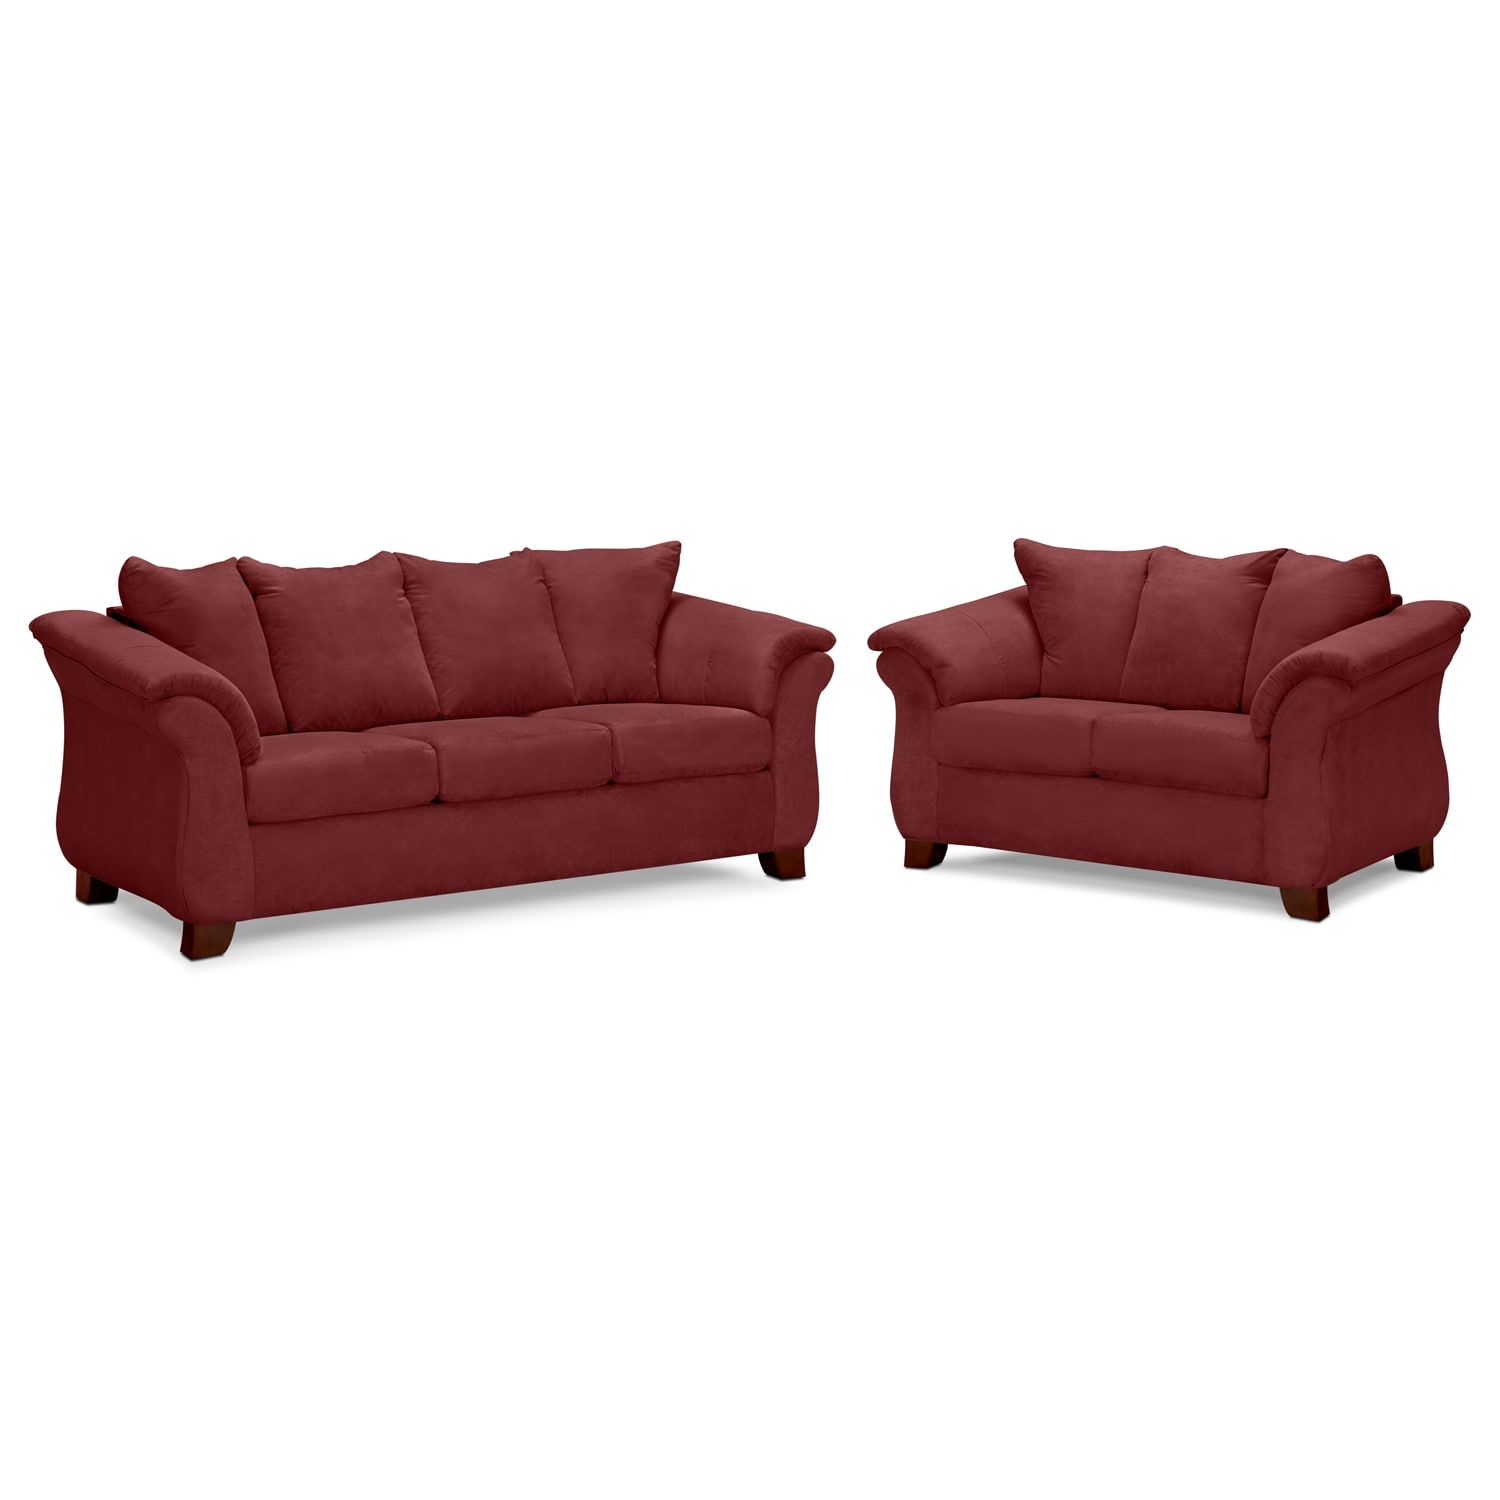 Living Room Furniture - Adrian Red 2 Pc. Living Room